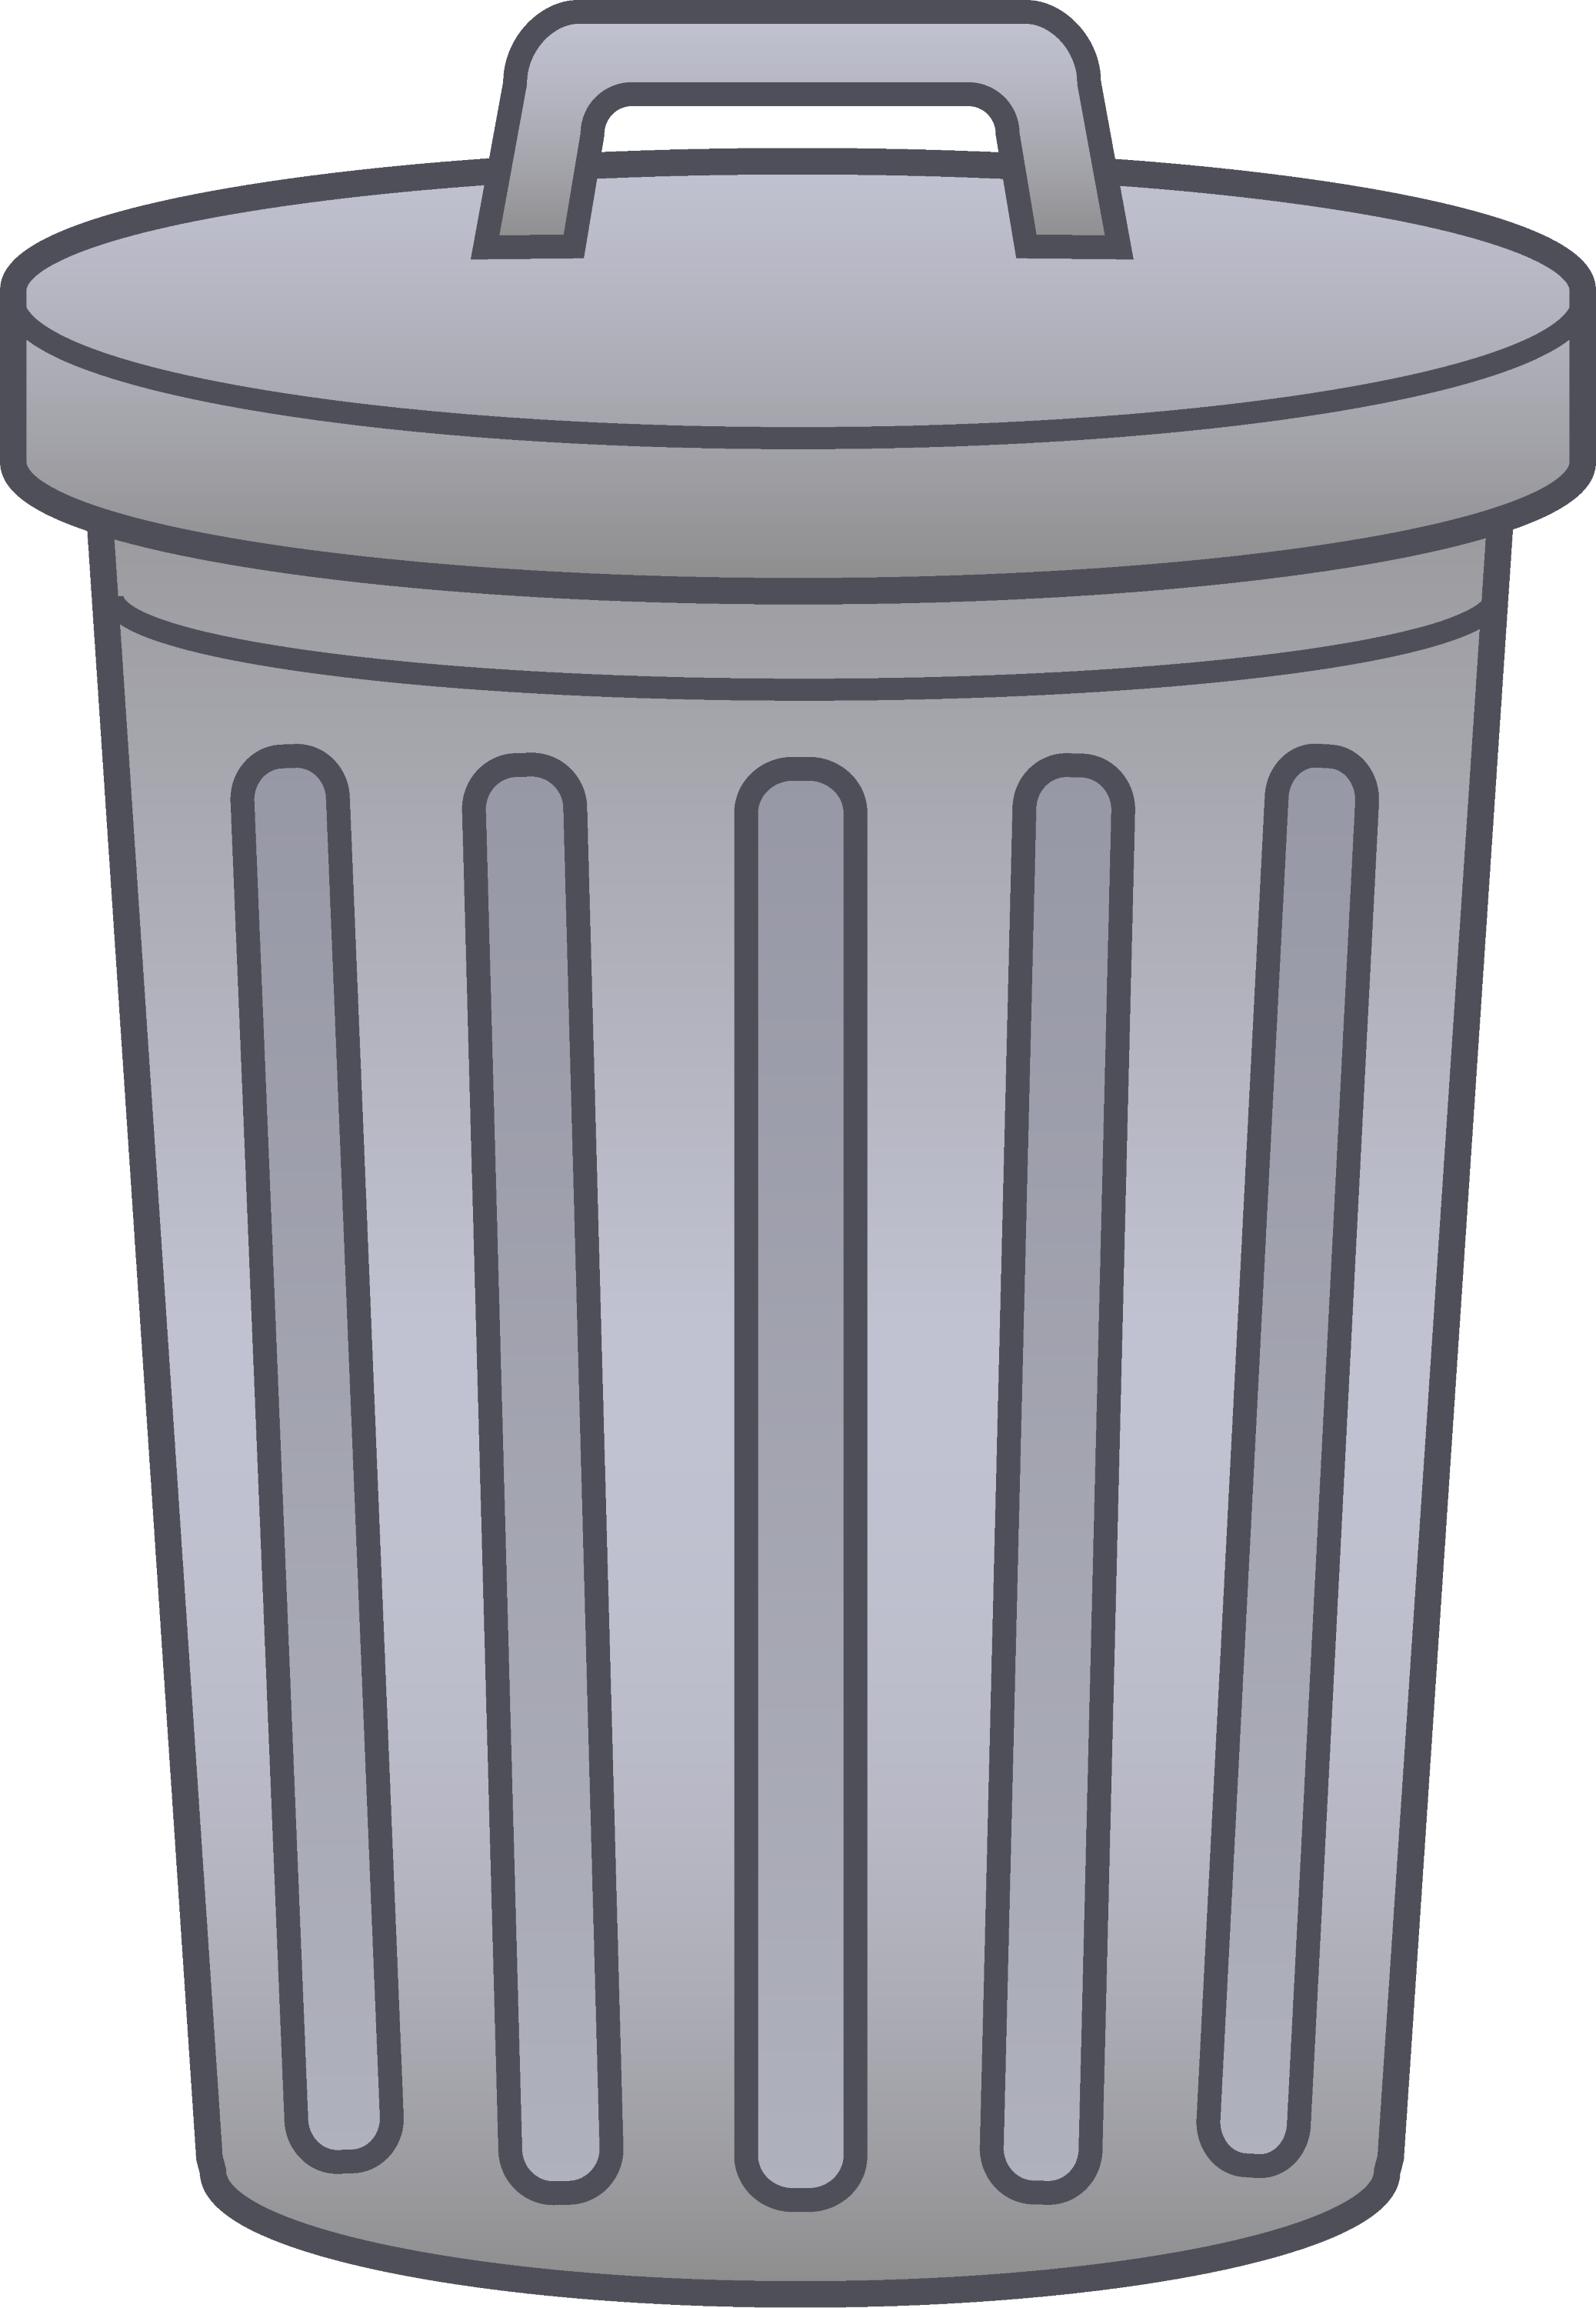 Back > Images For > Trash Can Cartoon